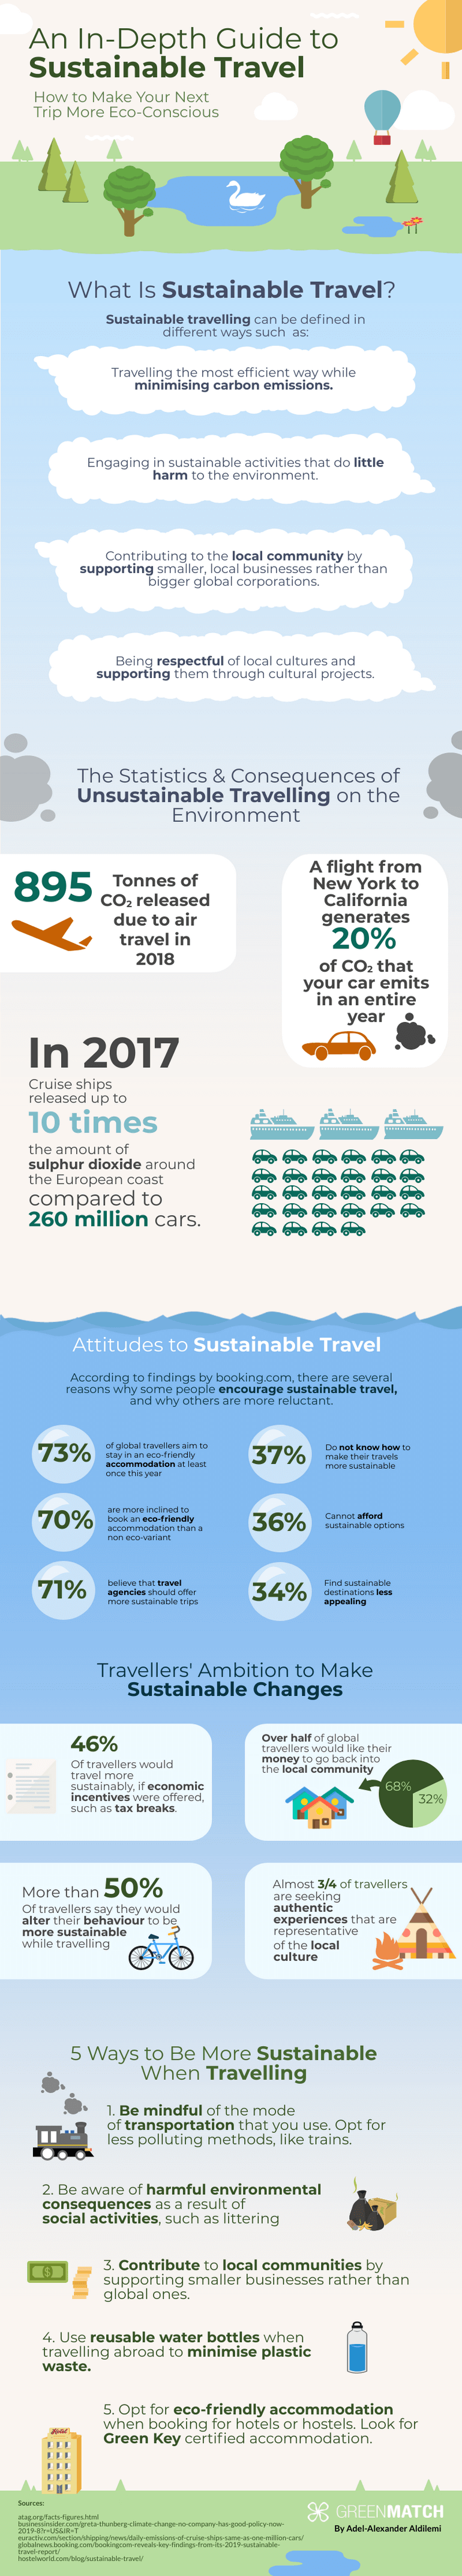 infographic: guide to sustainable travel